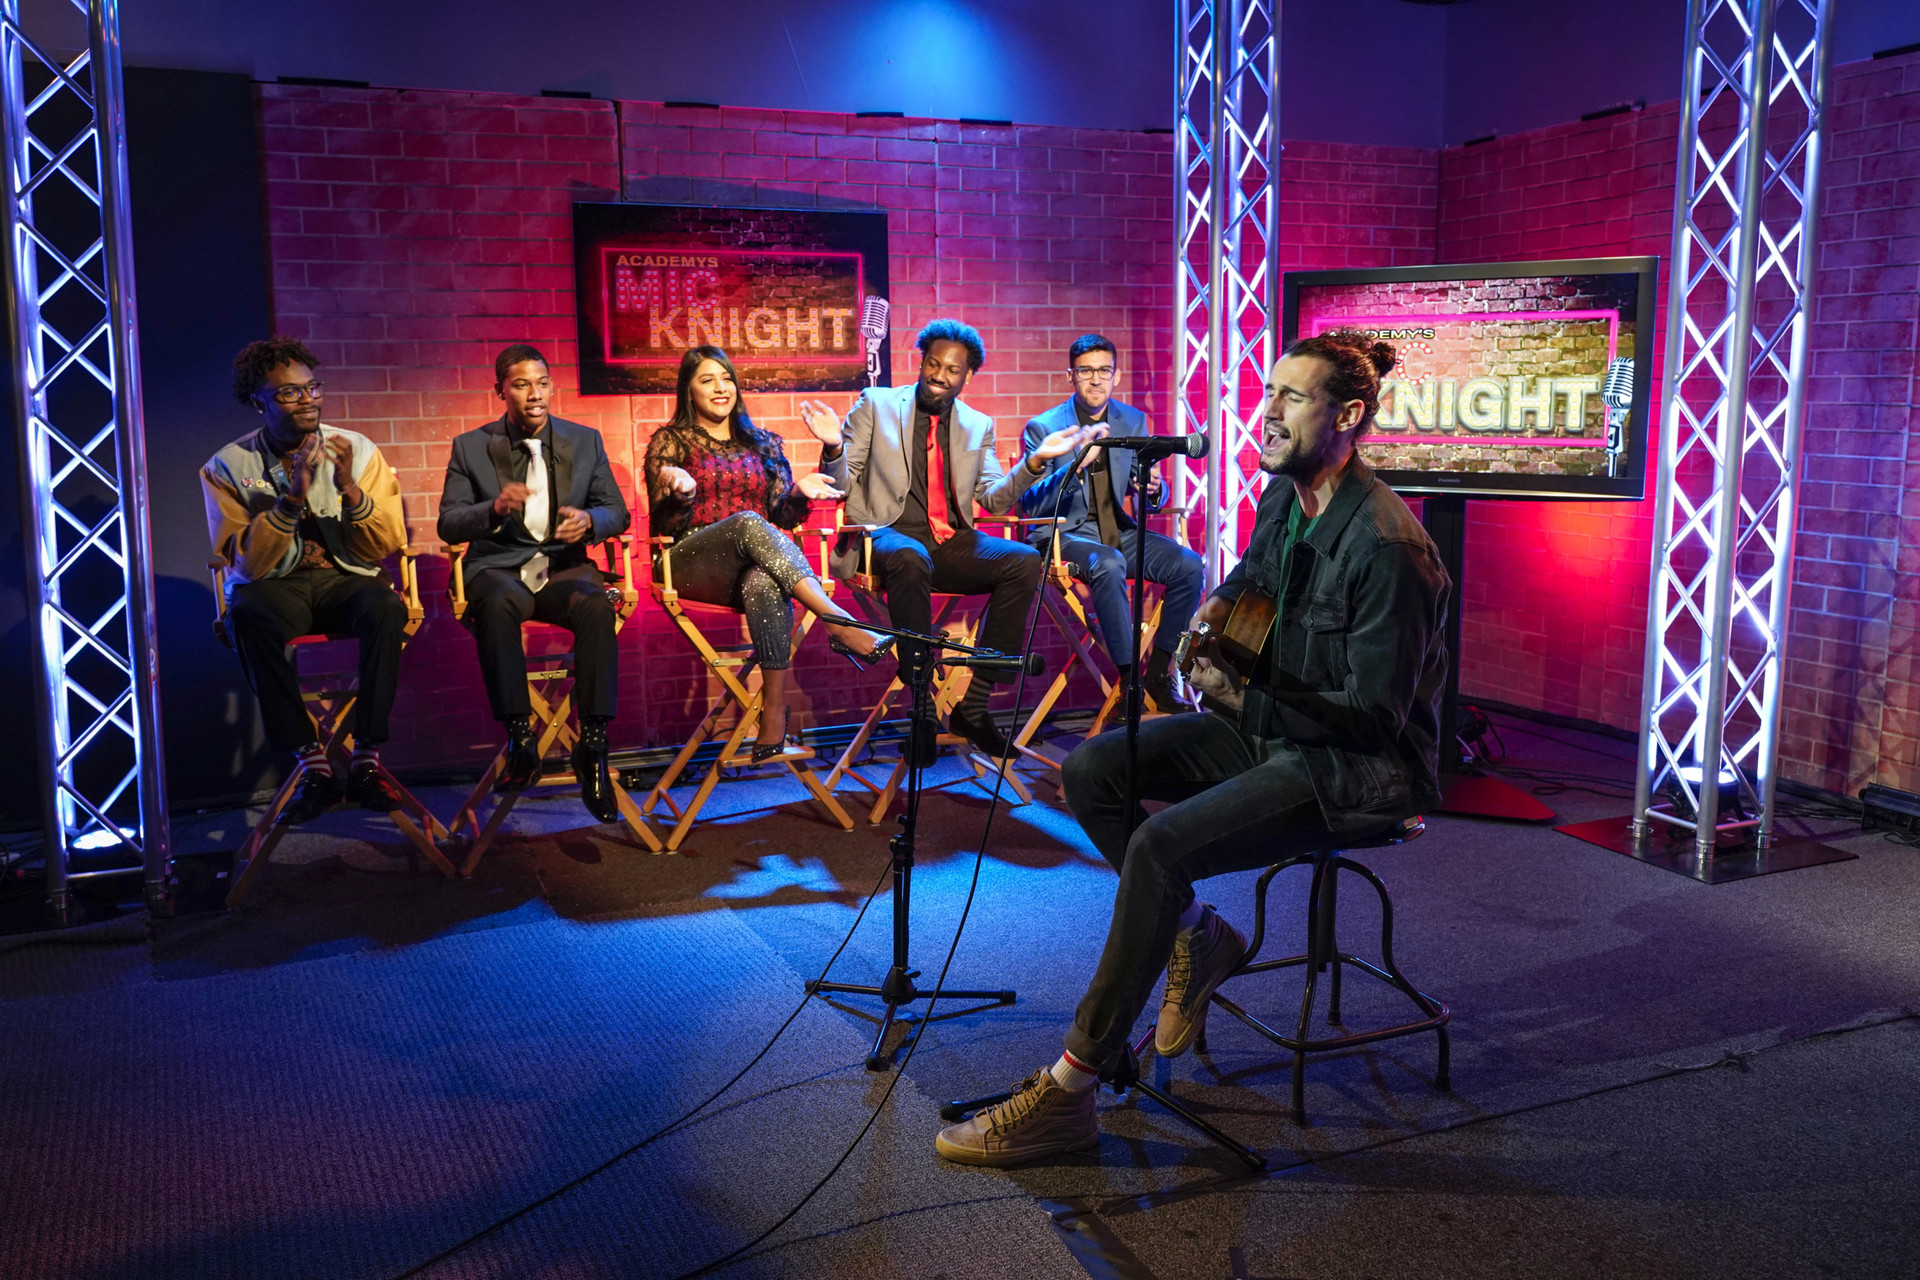 Entertainment Arts - School of Communications students at Mic Knight